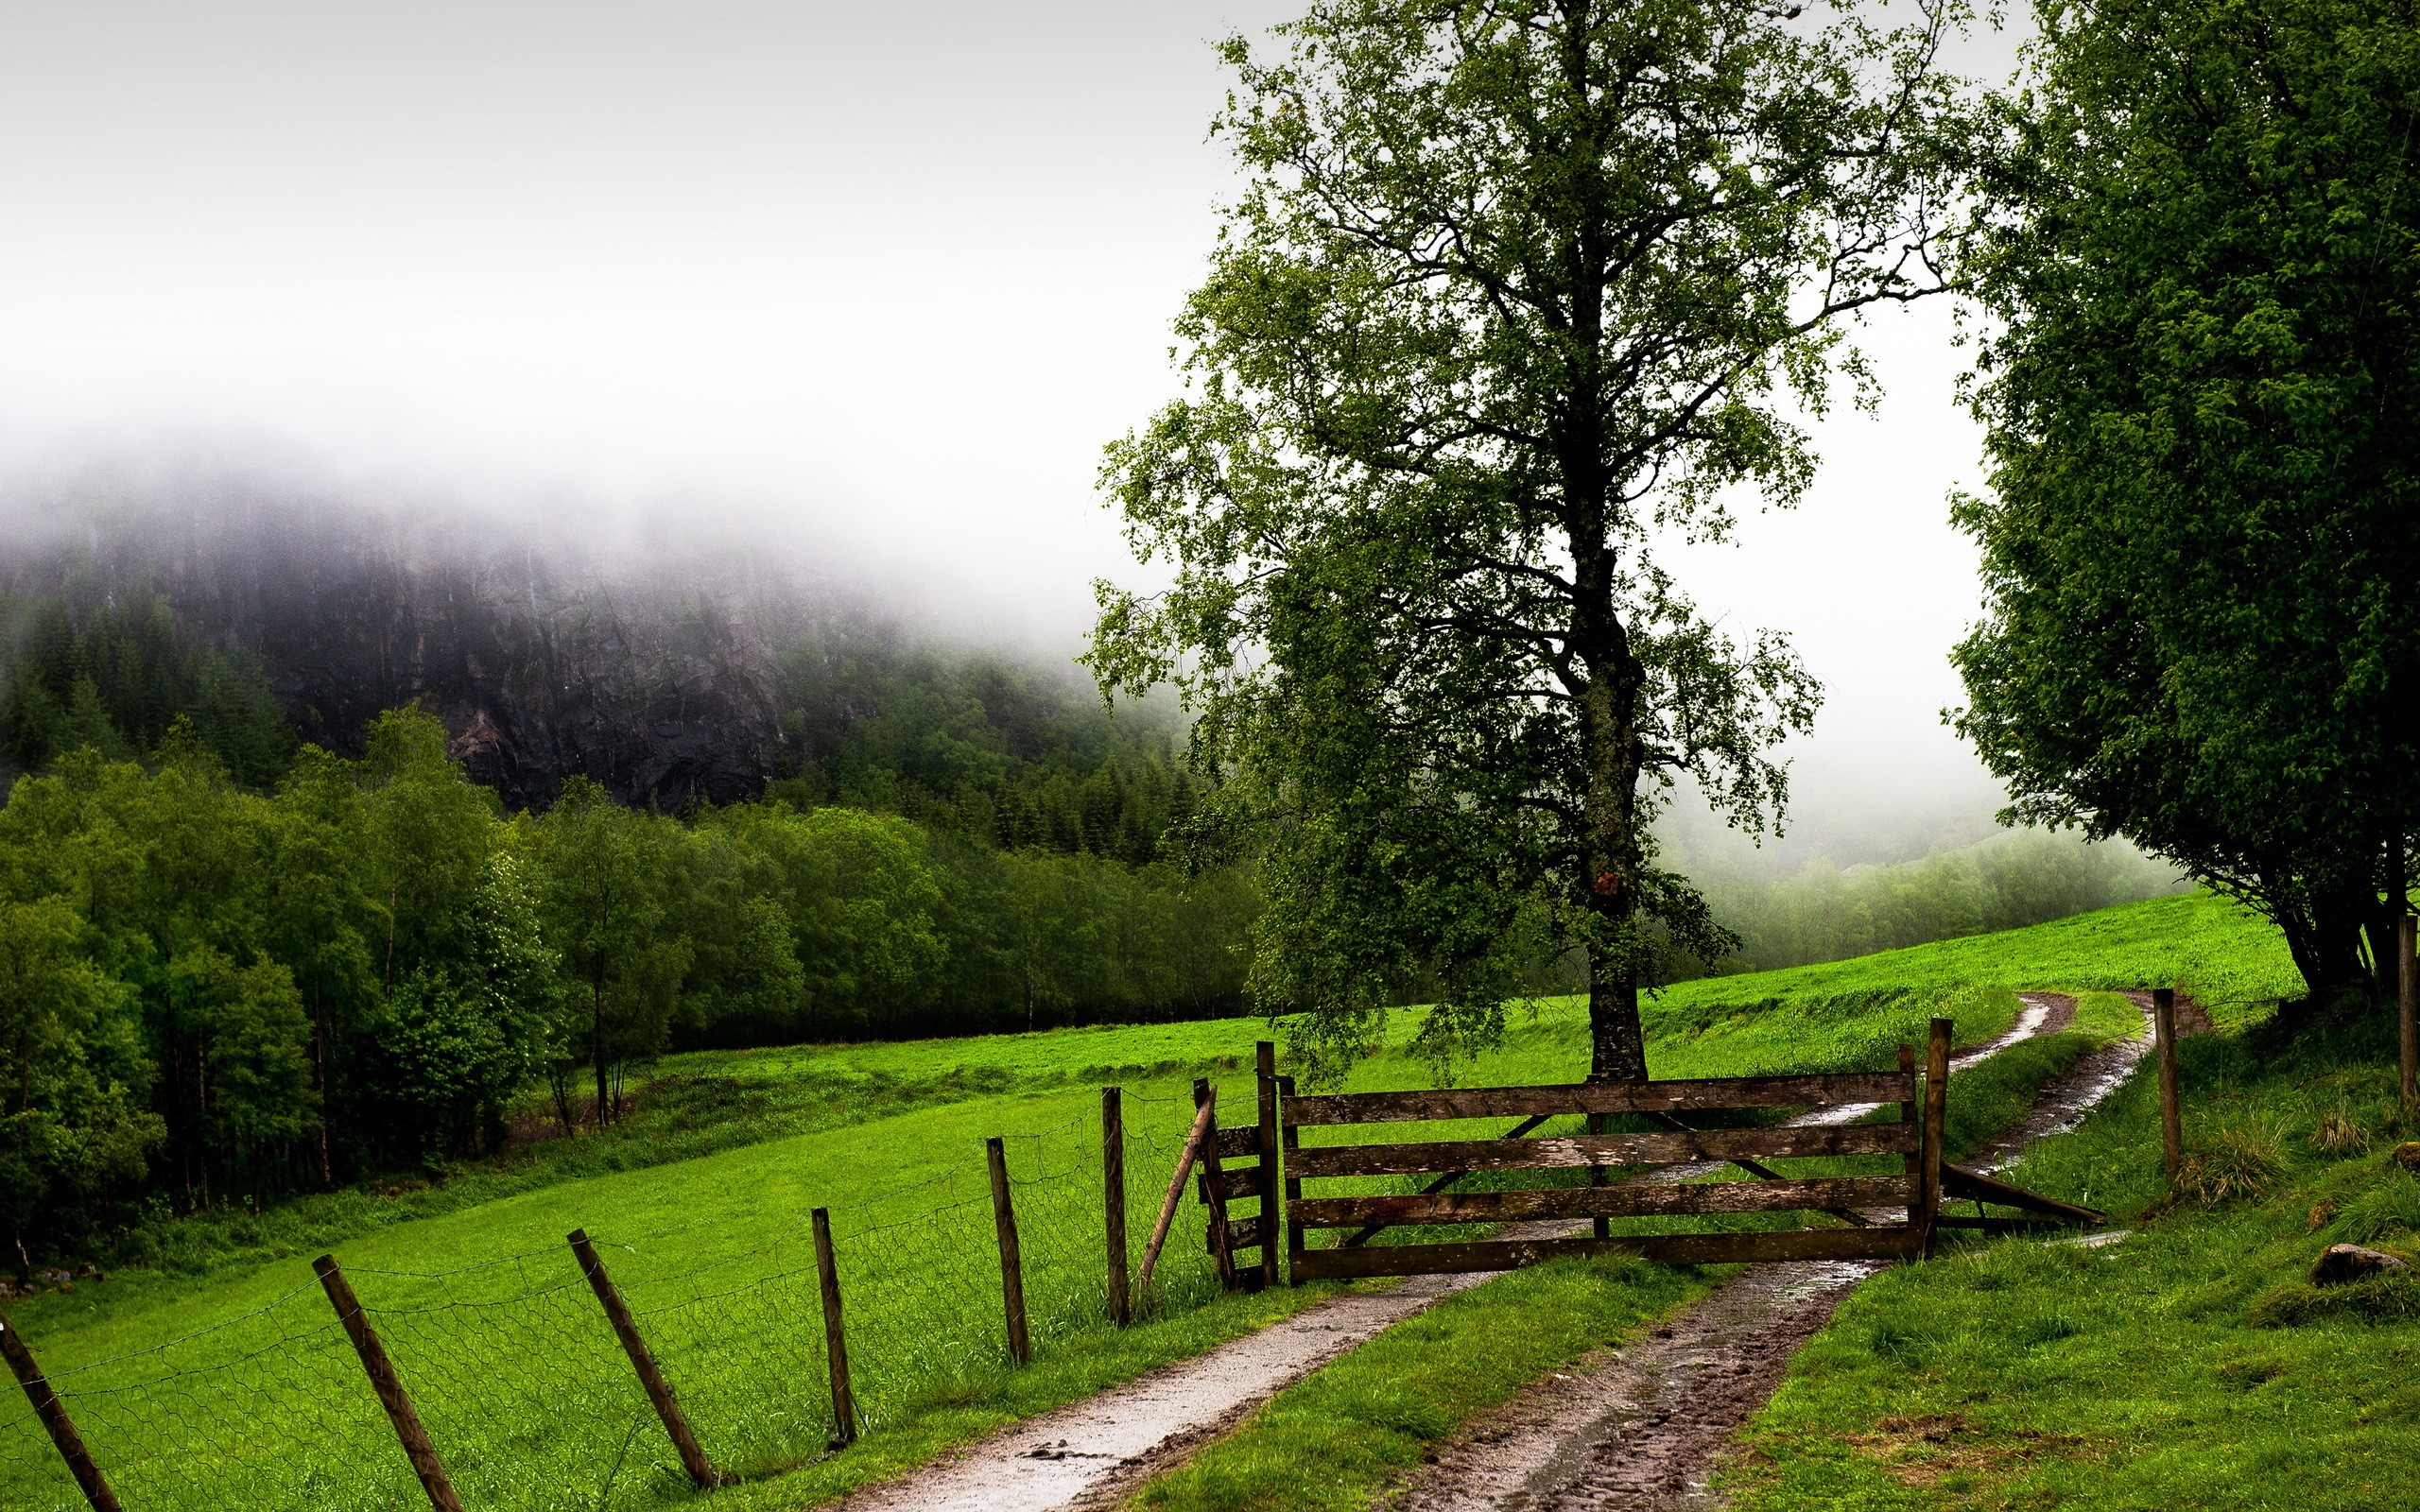 Daily Wallpaper: Foggy Ranch | I Like To Waste My Time